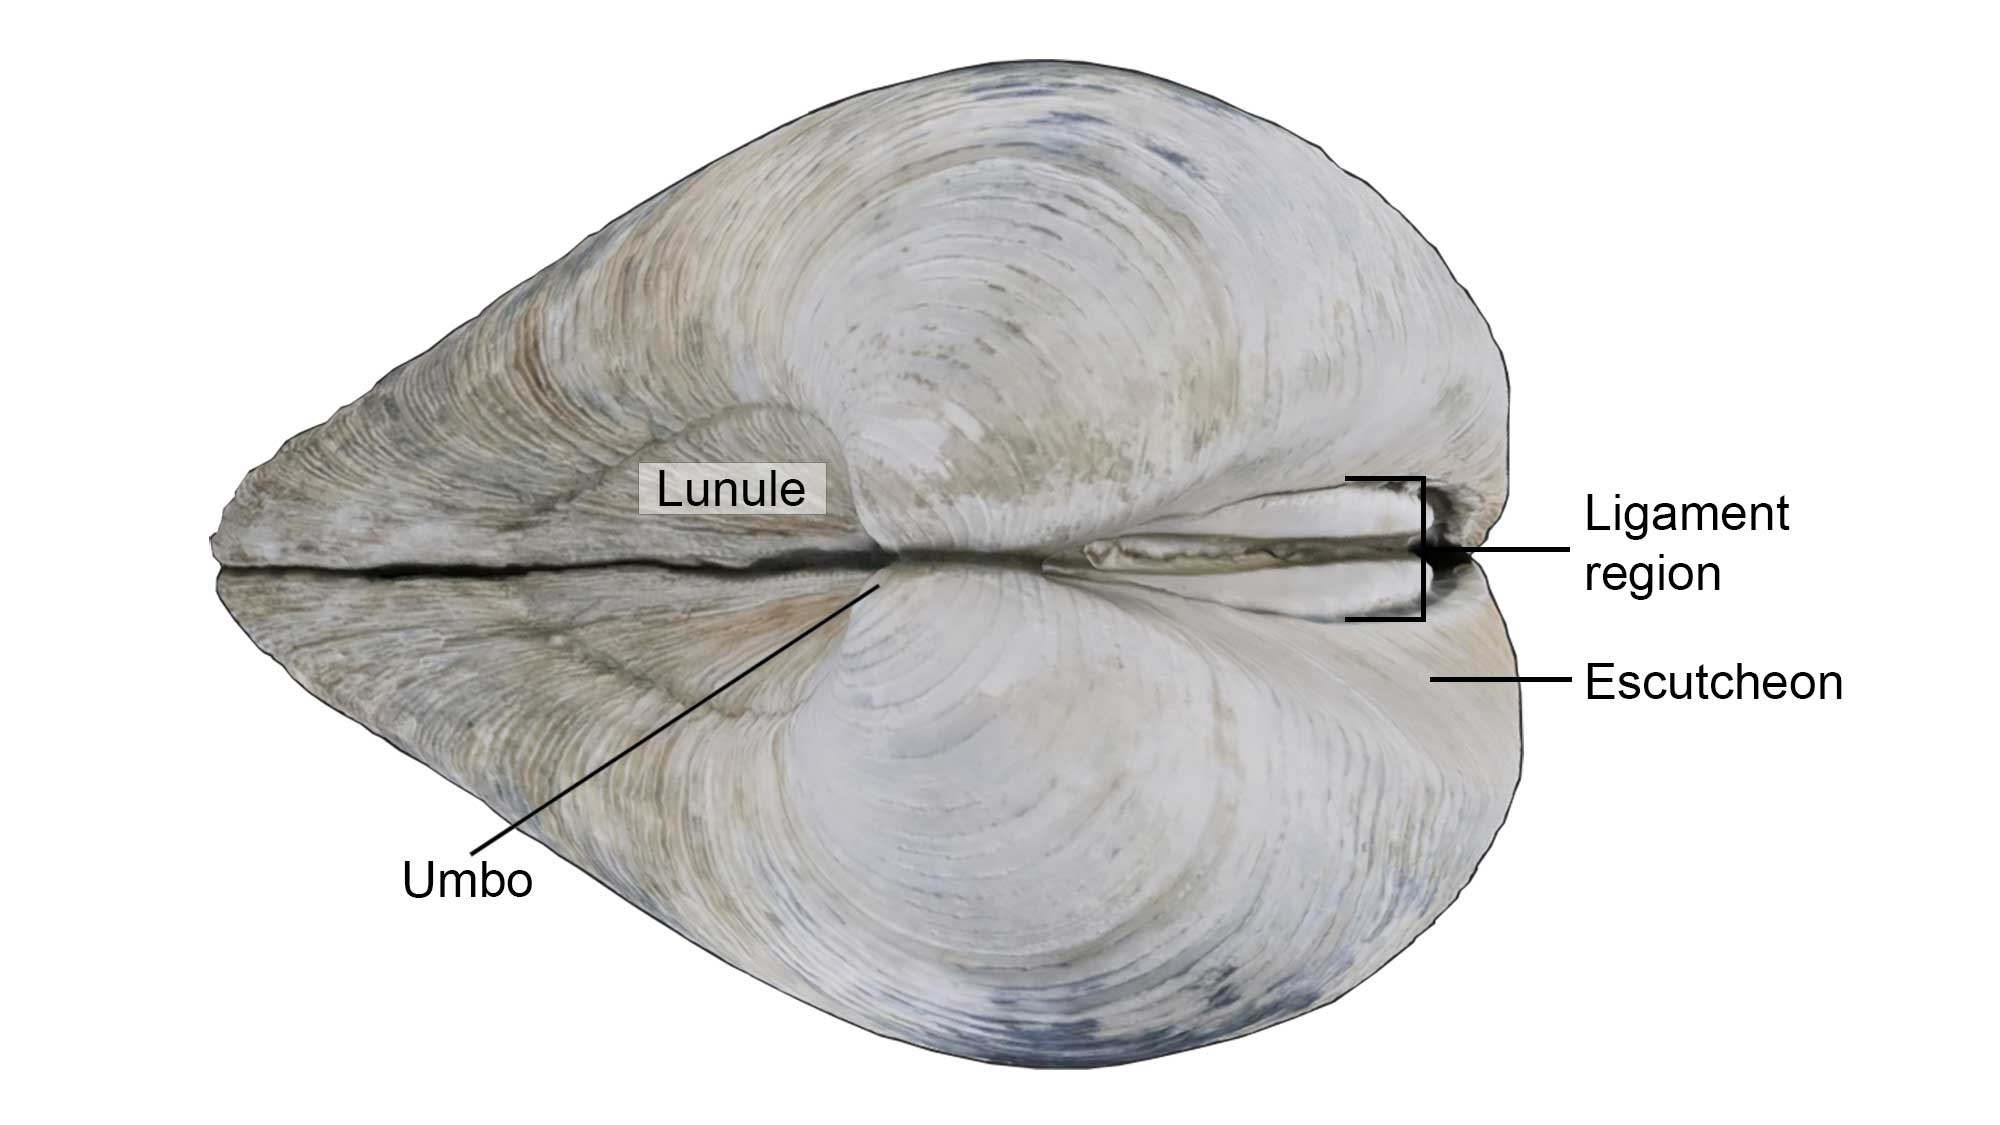 External features of the bivalve shell, including the lunule, escutcheon, ligament region, and umbo.